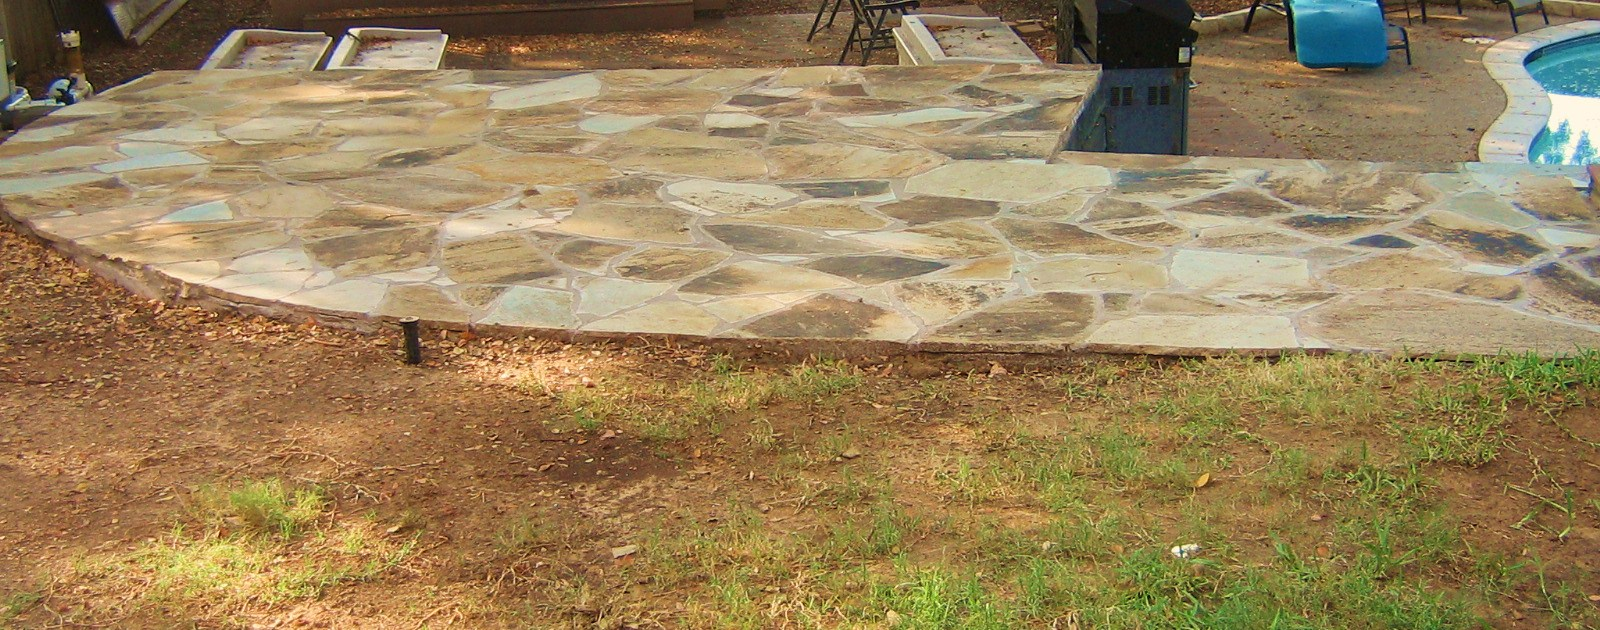 Flagstone Patio 250 Sq Ft Home And Lawn Transformers